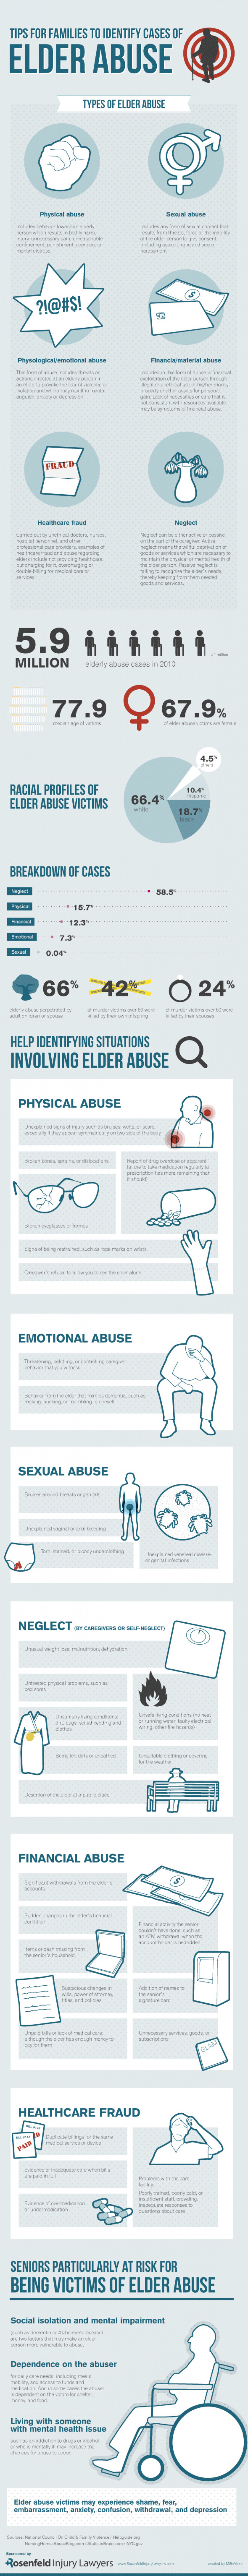 Tips For Families To Identify Cases Of Elder Abuse Infographic